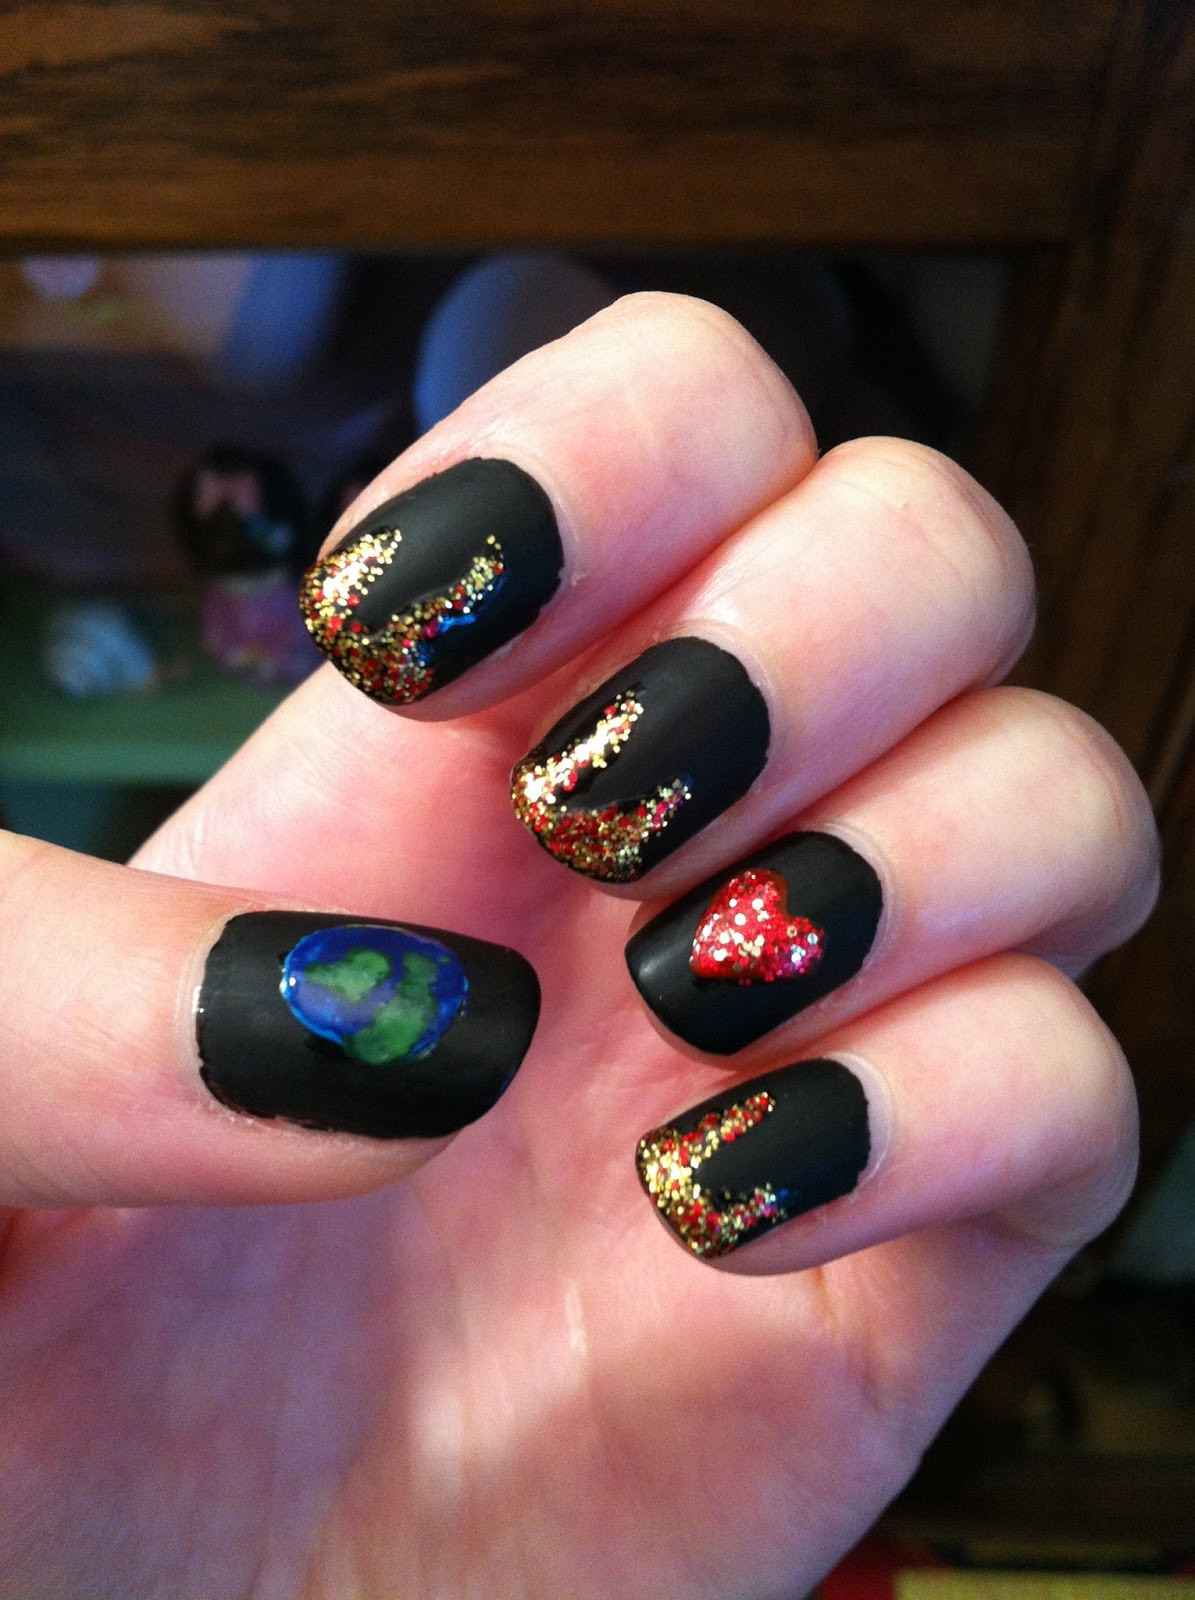 I Took Inspiration For My Nail Design From The First Two Lines Of Song Here Are Pictures